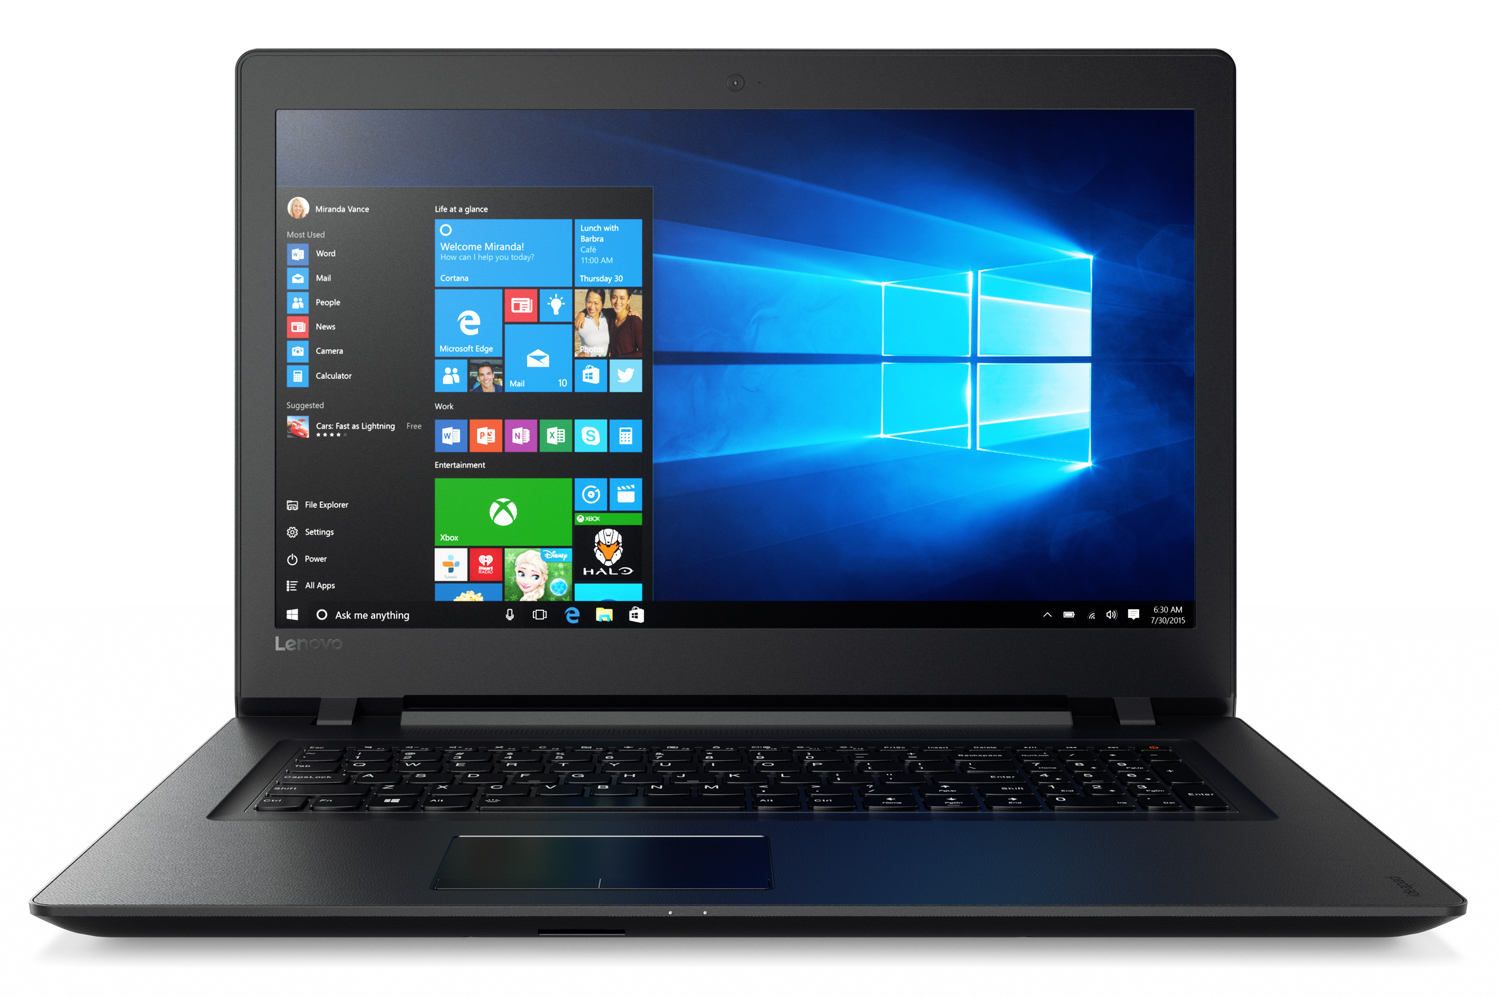 Lenovo IdeaPad V110 17IKB 80V20006GE Notebook Review